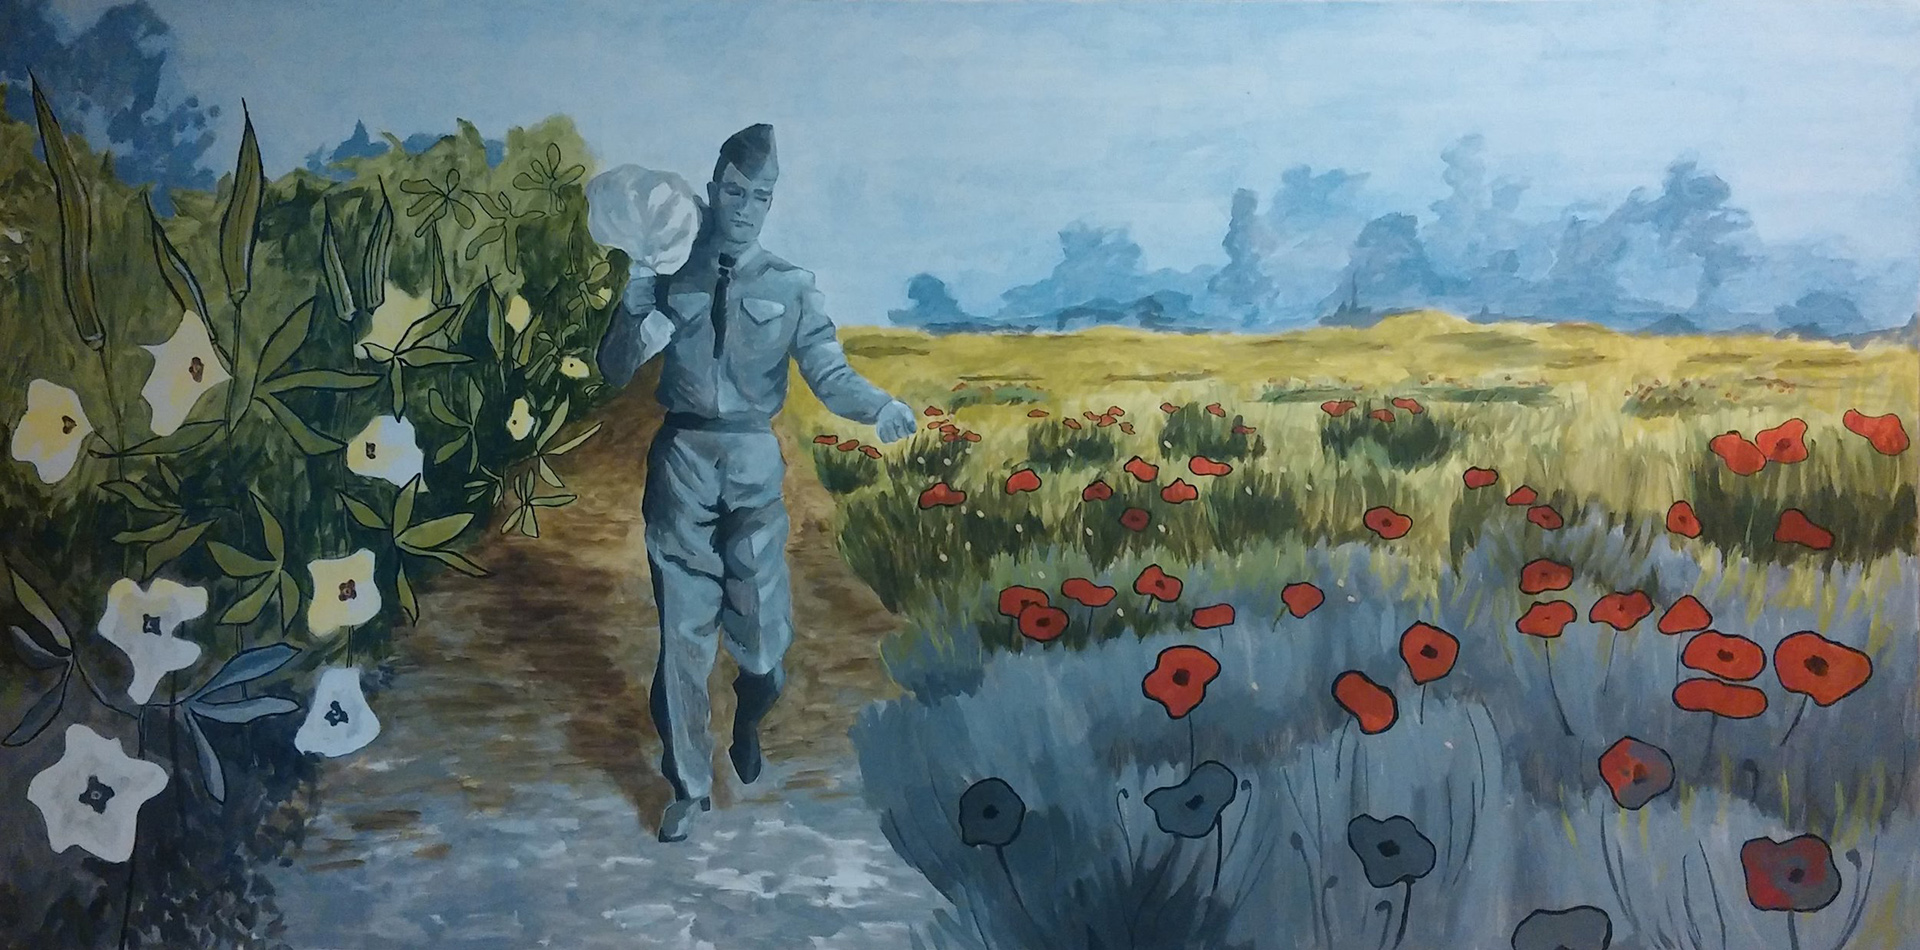 - Okra and The Poppies, 48 x 96, Acrylic on MasoniteThis painting was originally done as a mock for a proposal request out of Georgetown, TX. It explains the story of how Henry